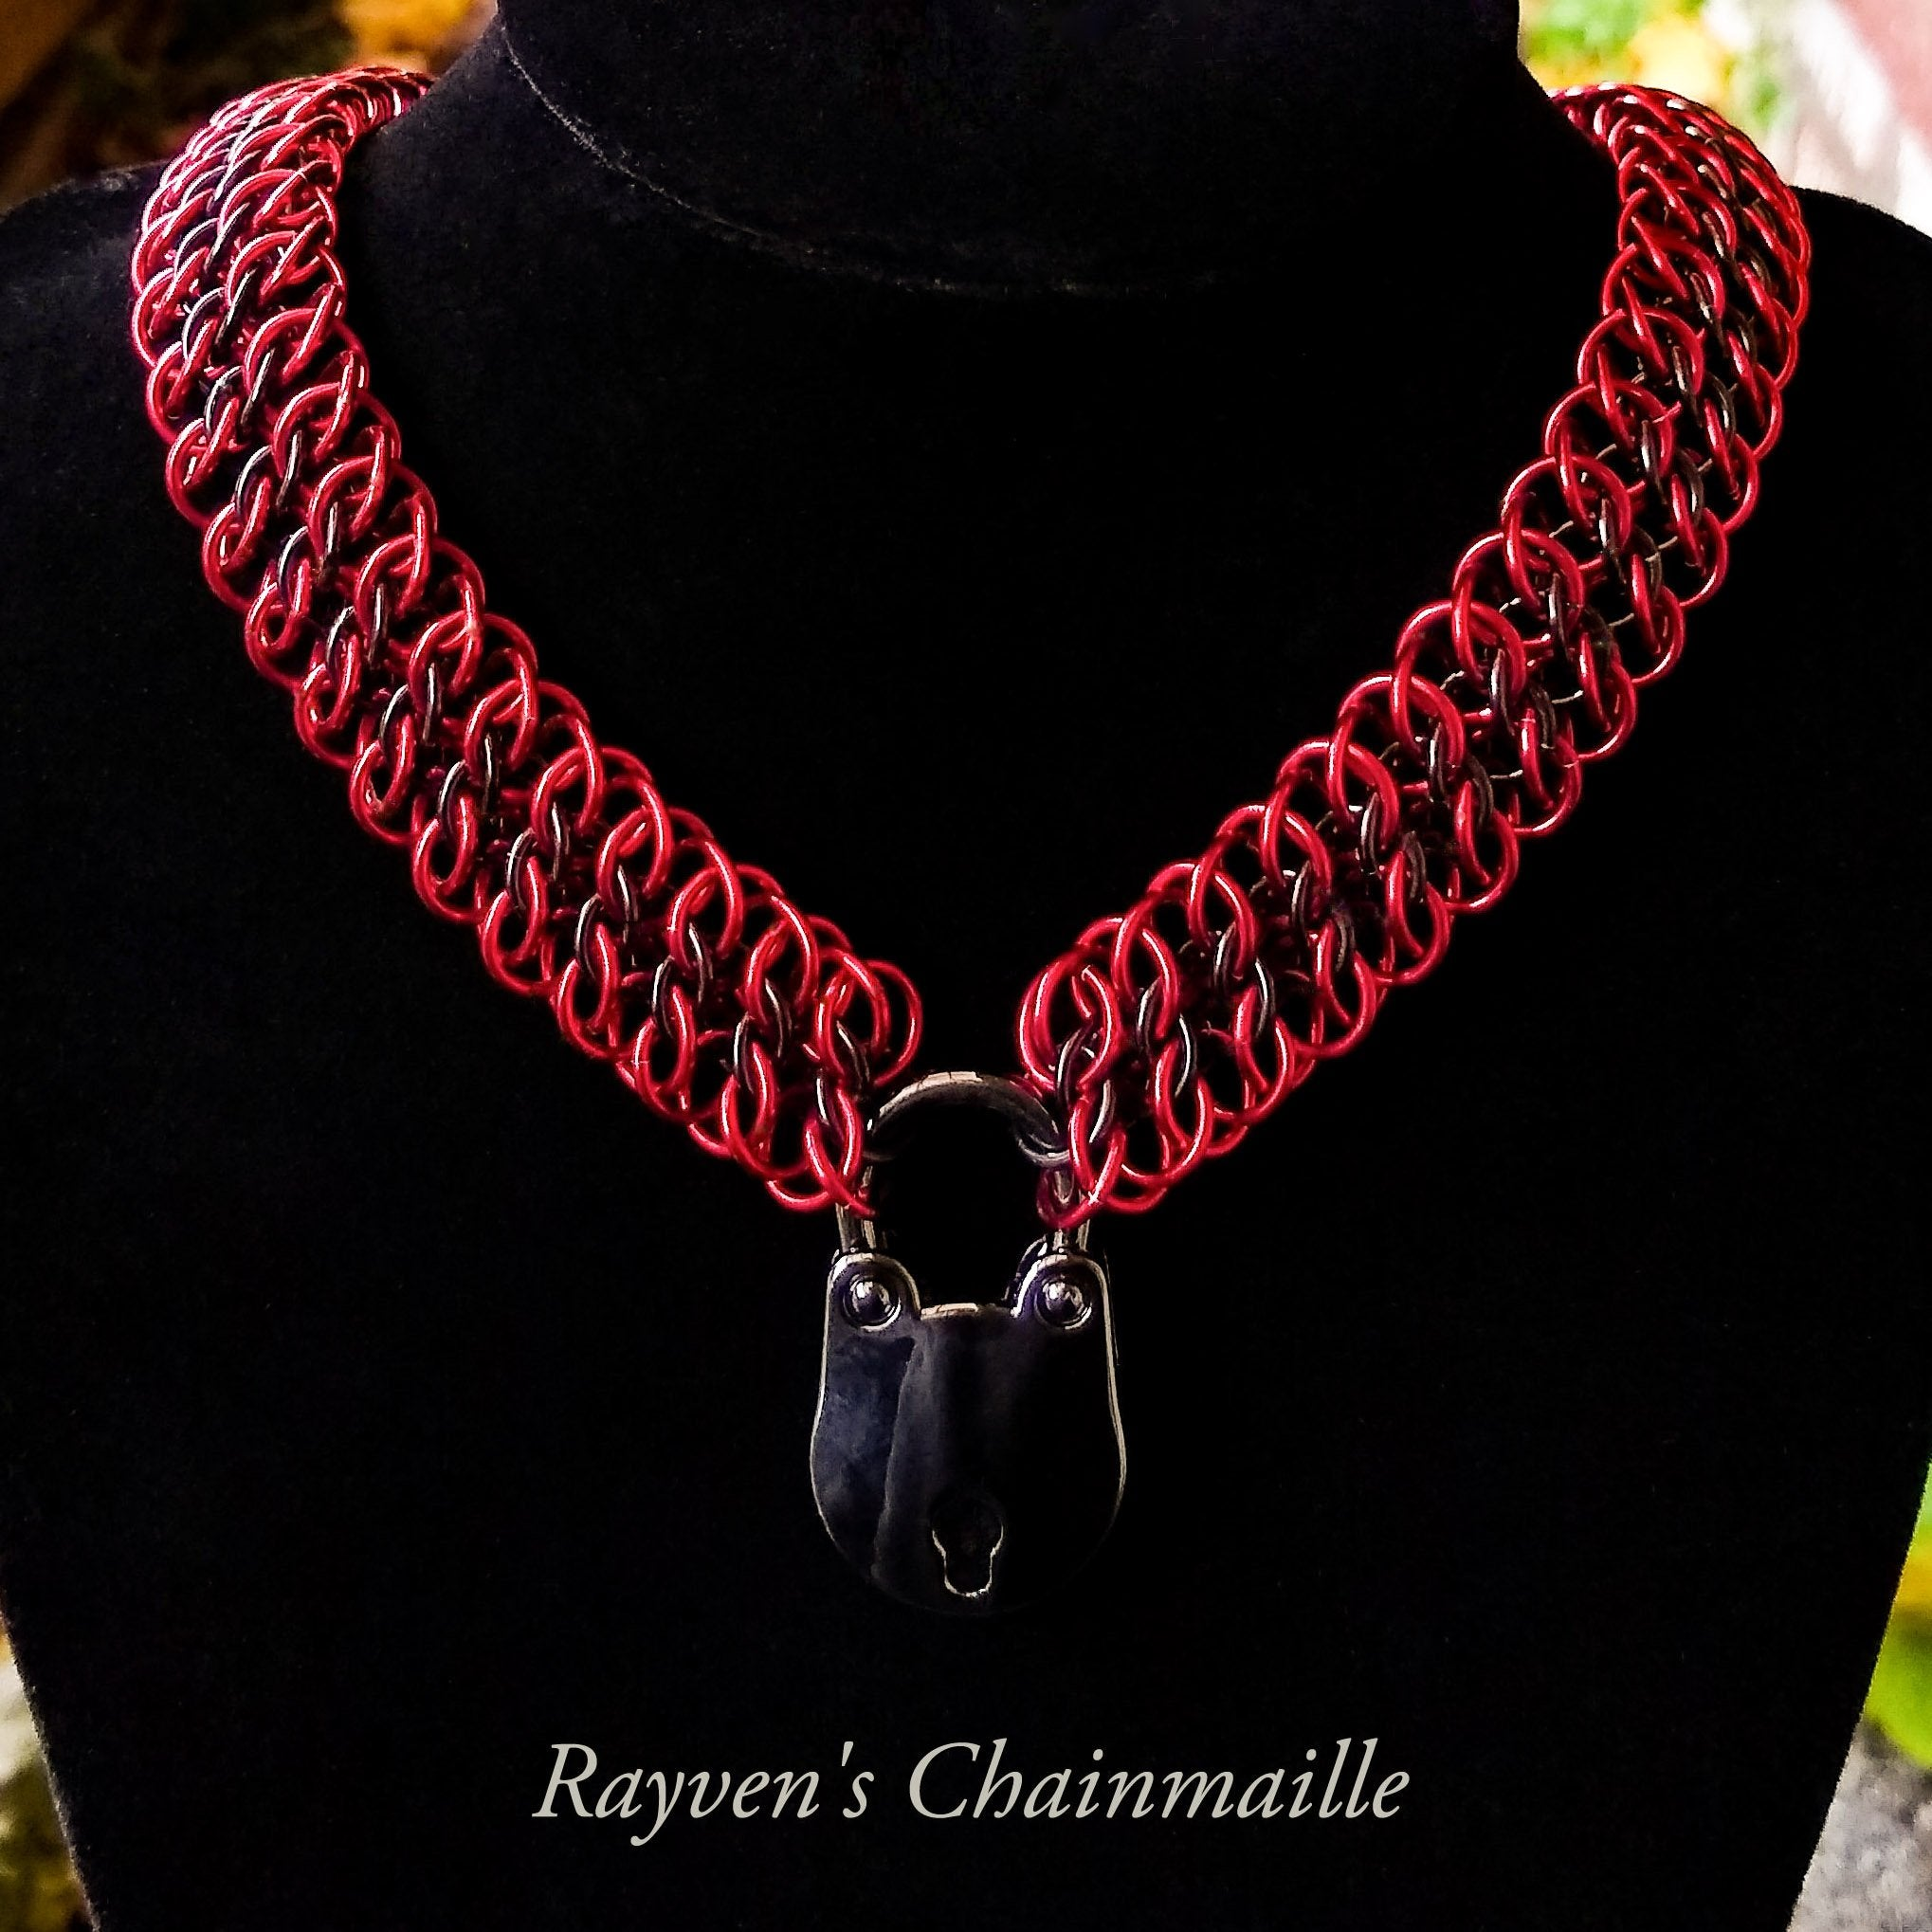 Red & Black Padlock GSG Chainmaille Collar - Rayven's Chainmaille